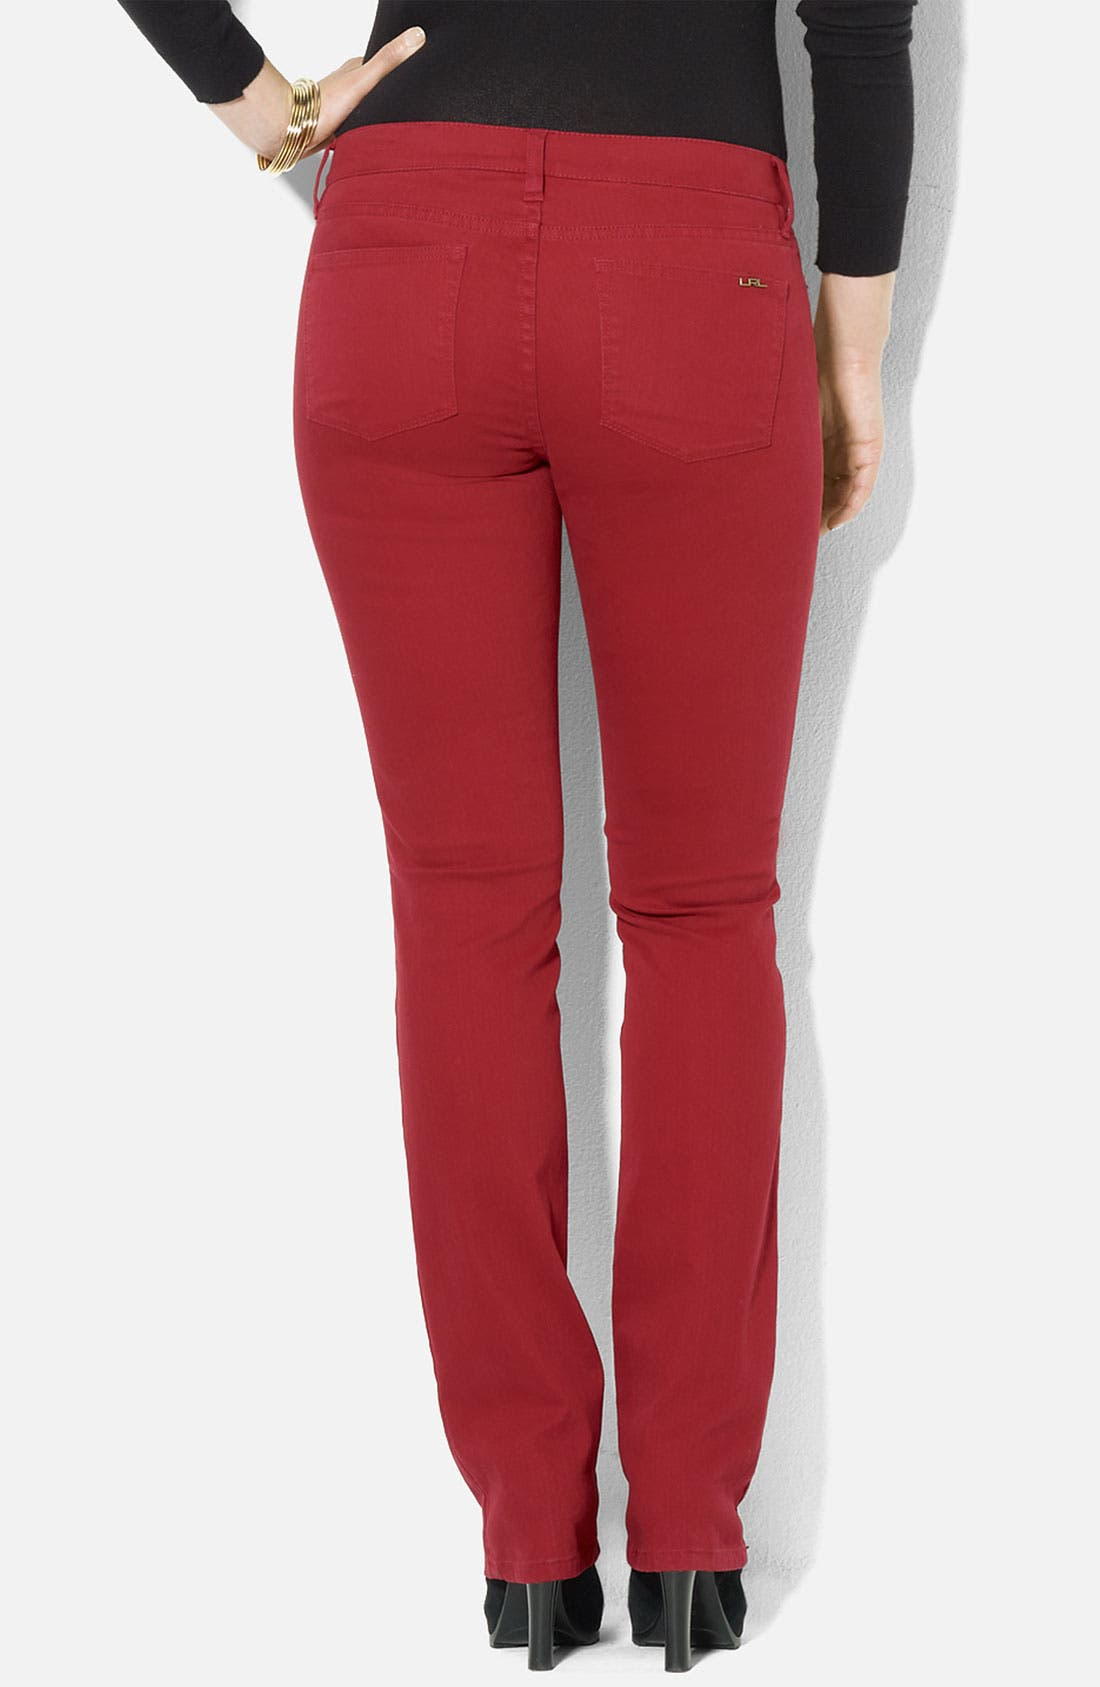 Alternate Image 2  - Lauren Ralph Lauren Slim Straight Leg Colored Jeans (Petite) (Online Exclusive)